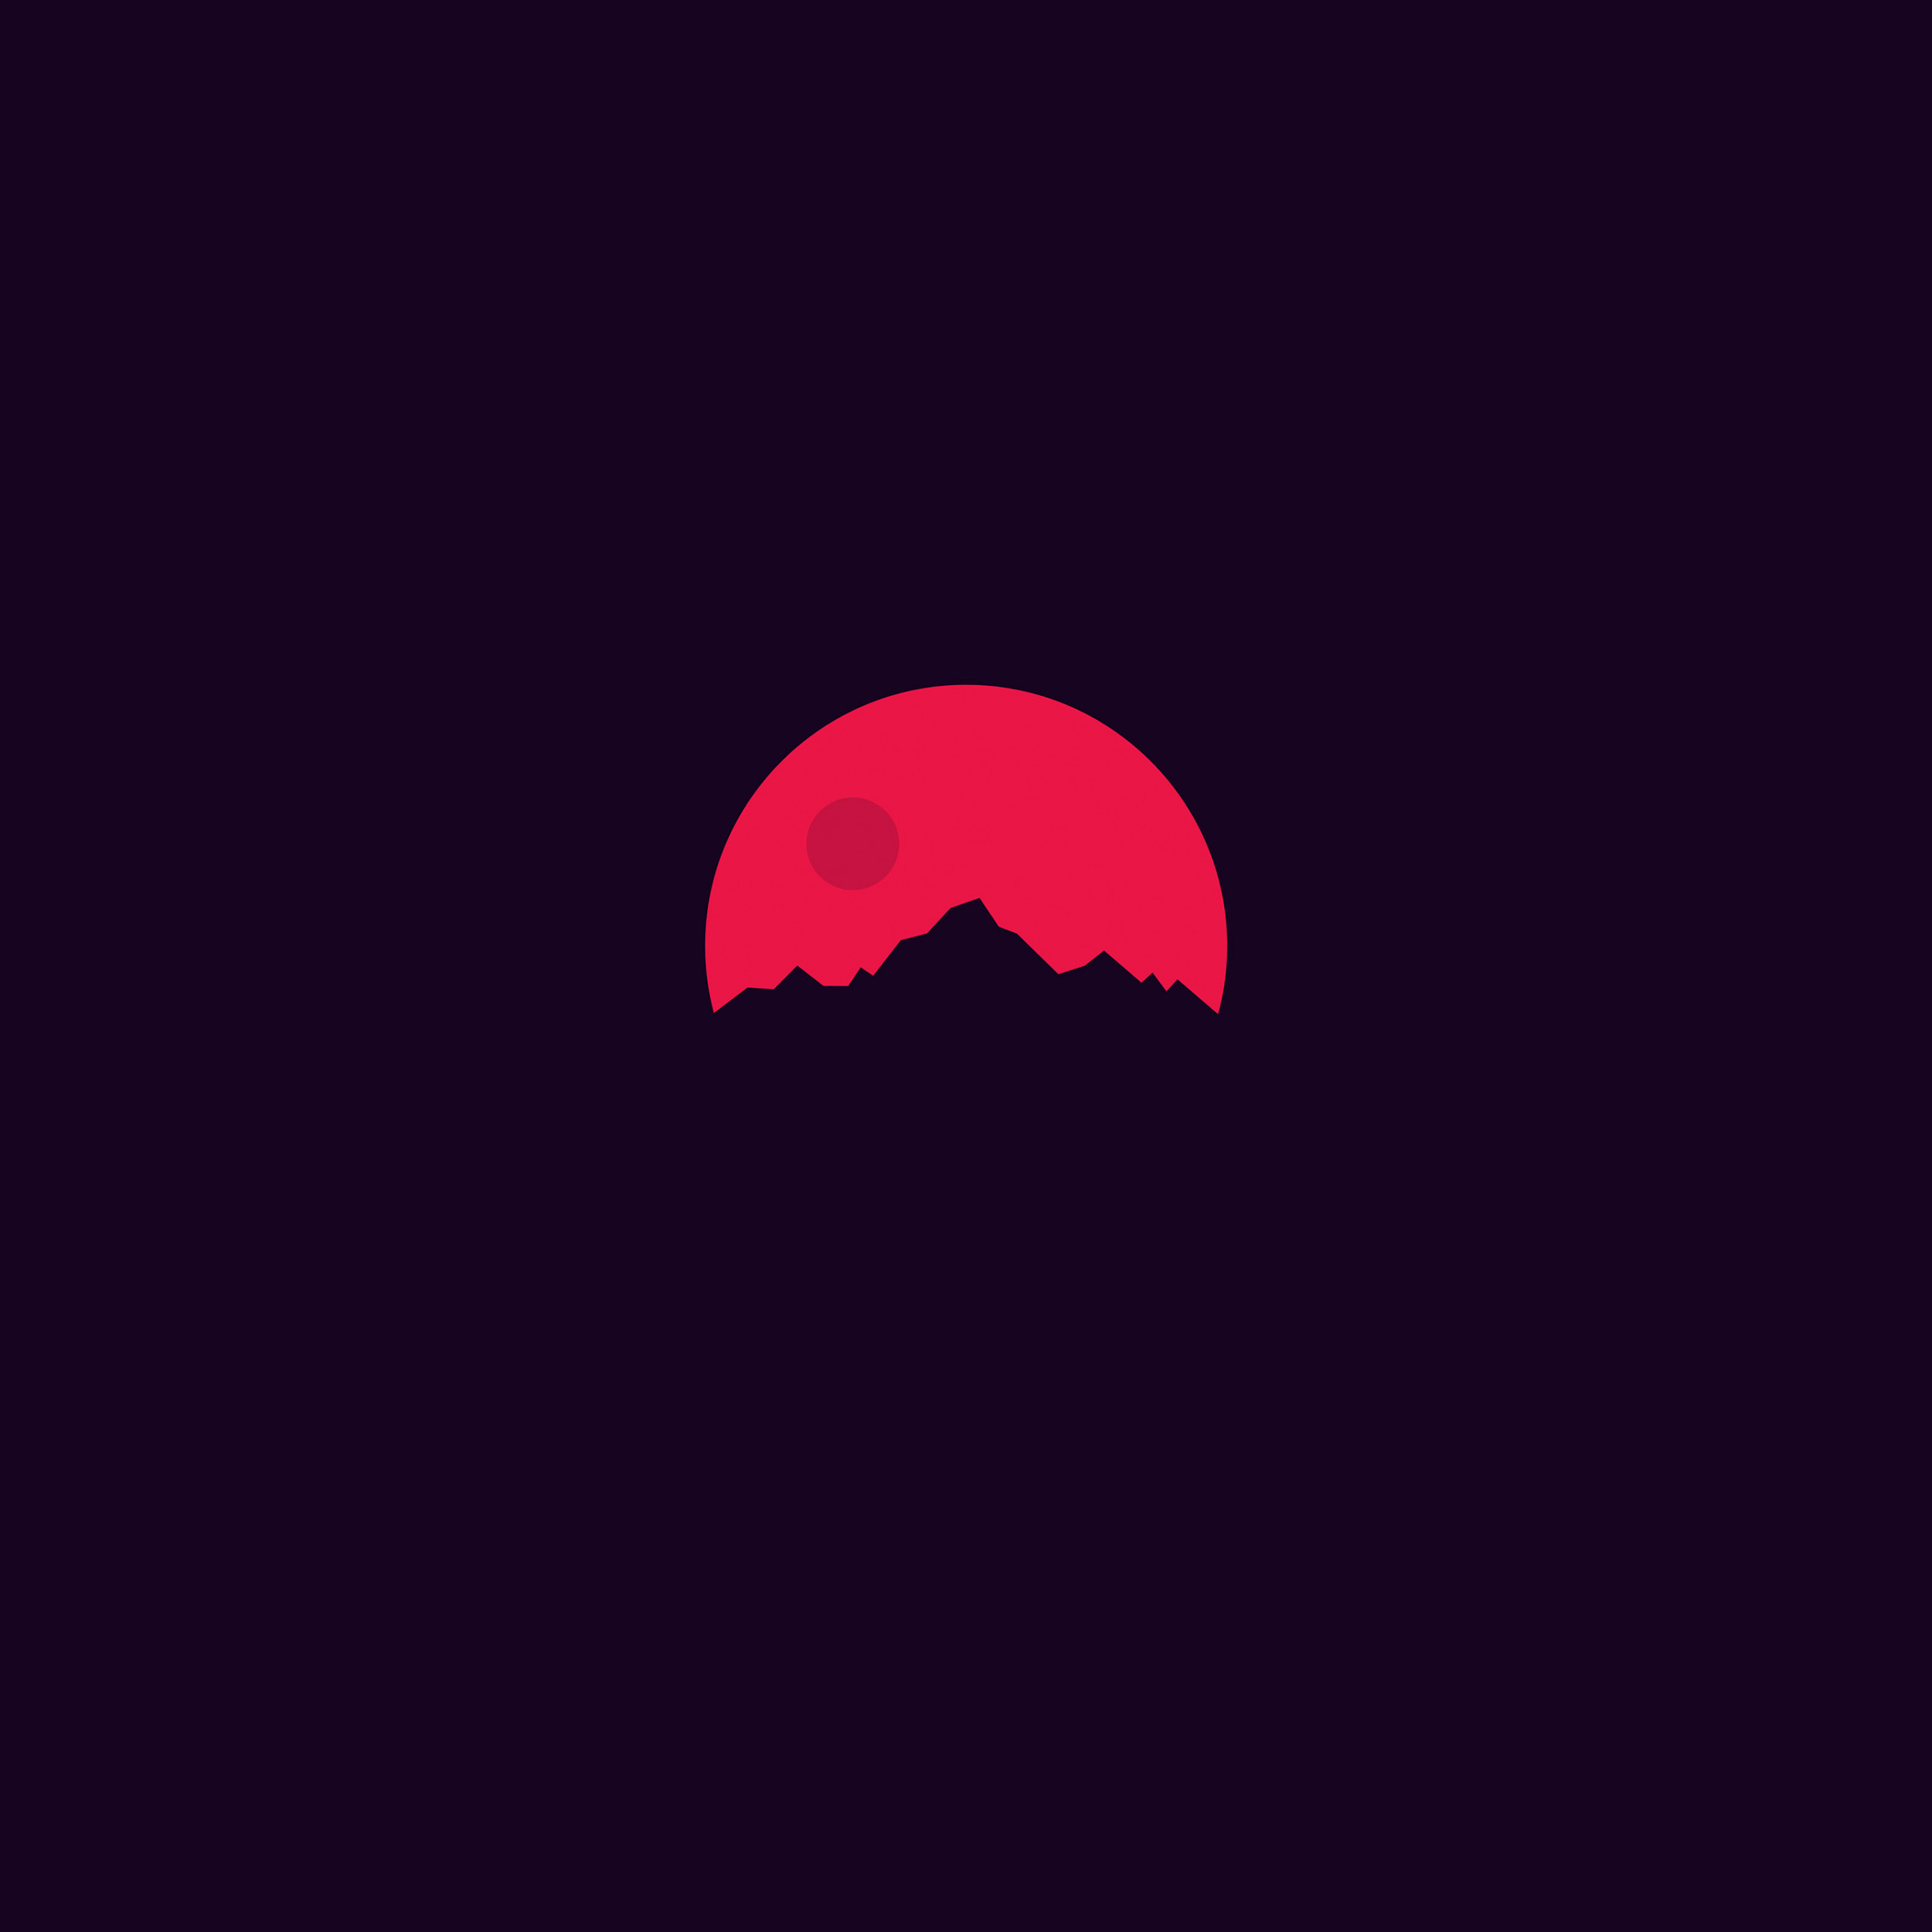 papers ar12 minimal sunset art illustration 40 wallpaper